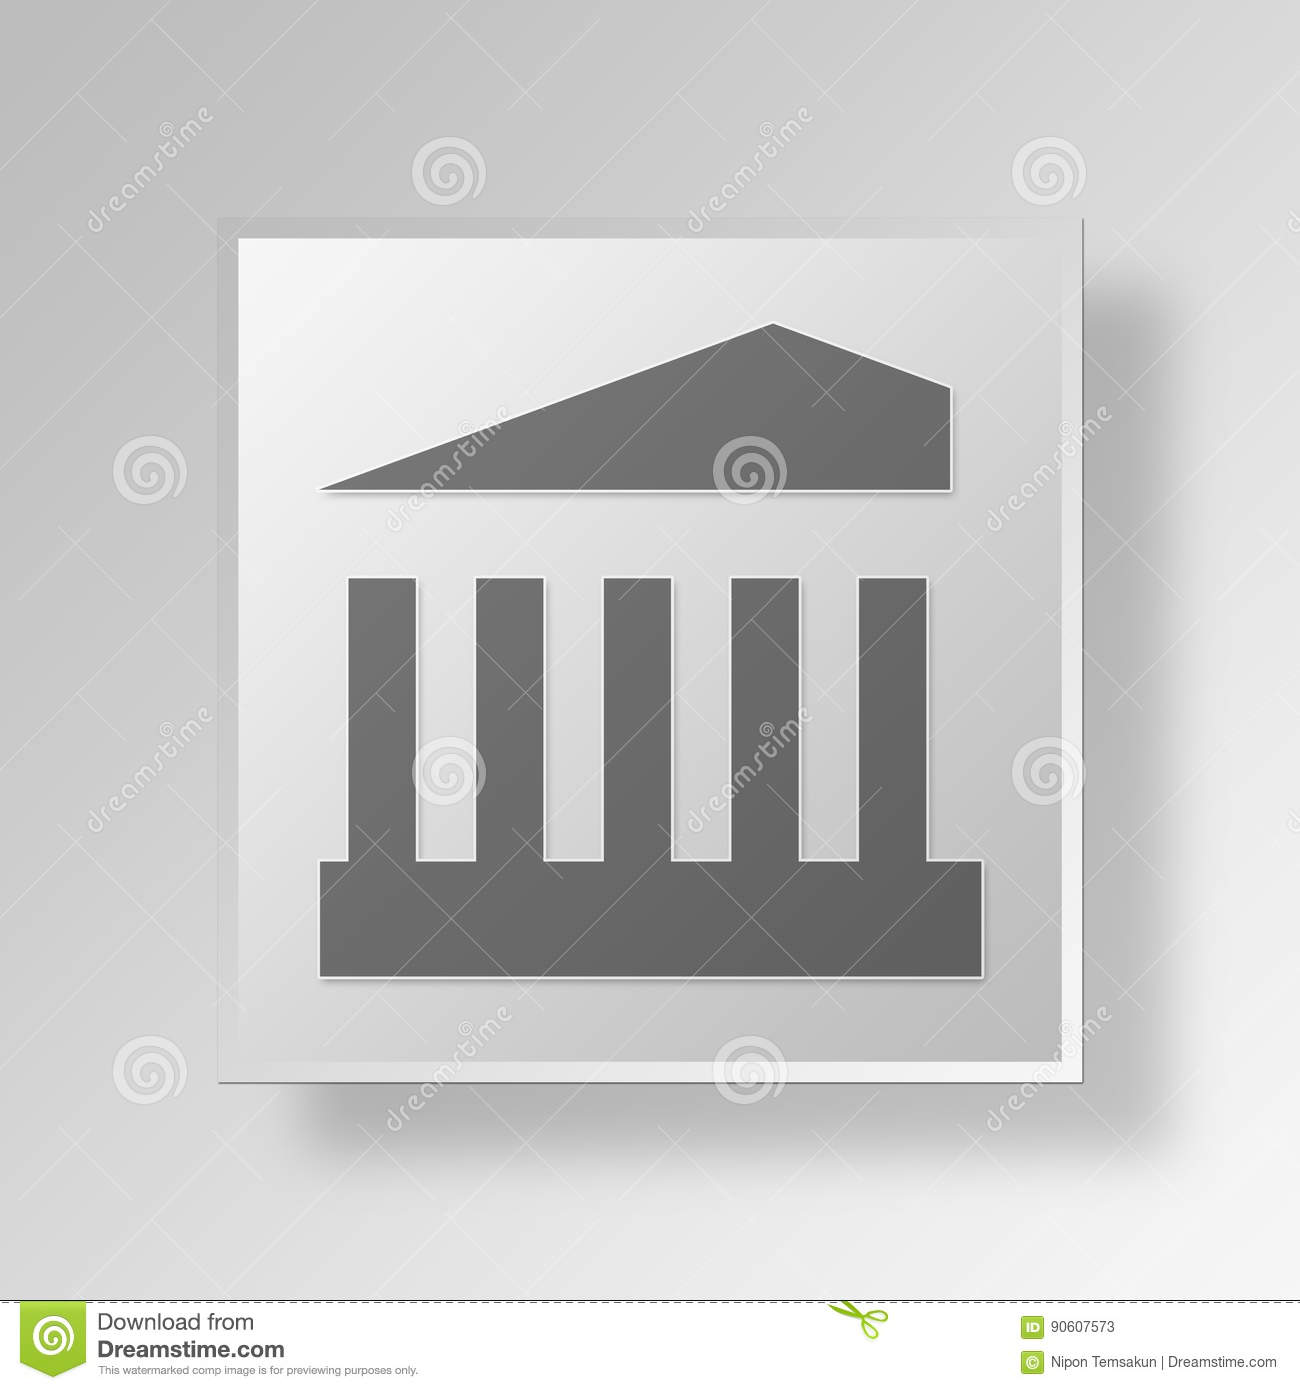 3d nyse icon business concept stock illustration illustration of 3d nyse icon business concept buycottarizona